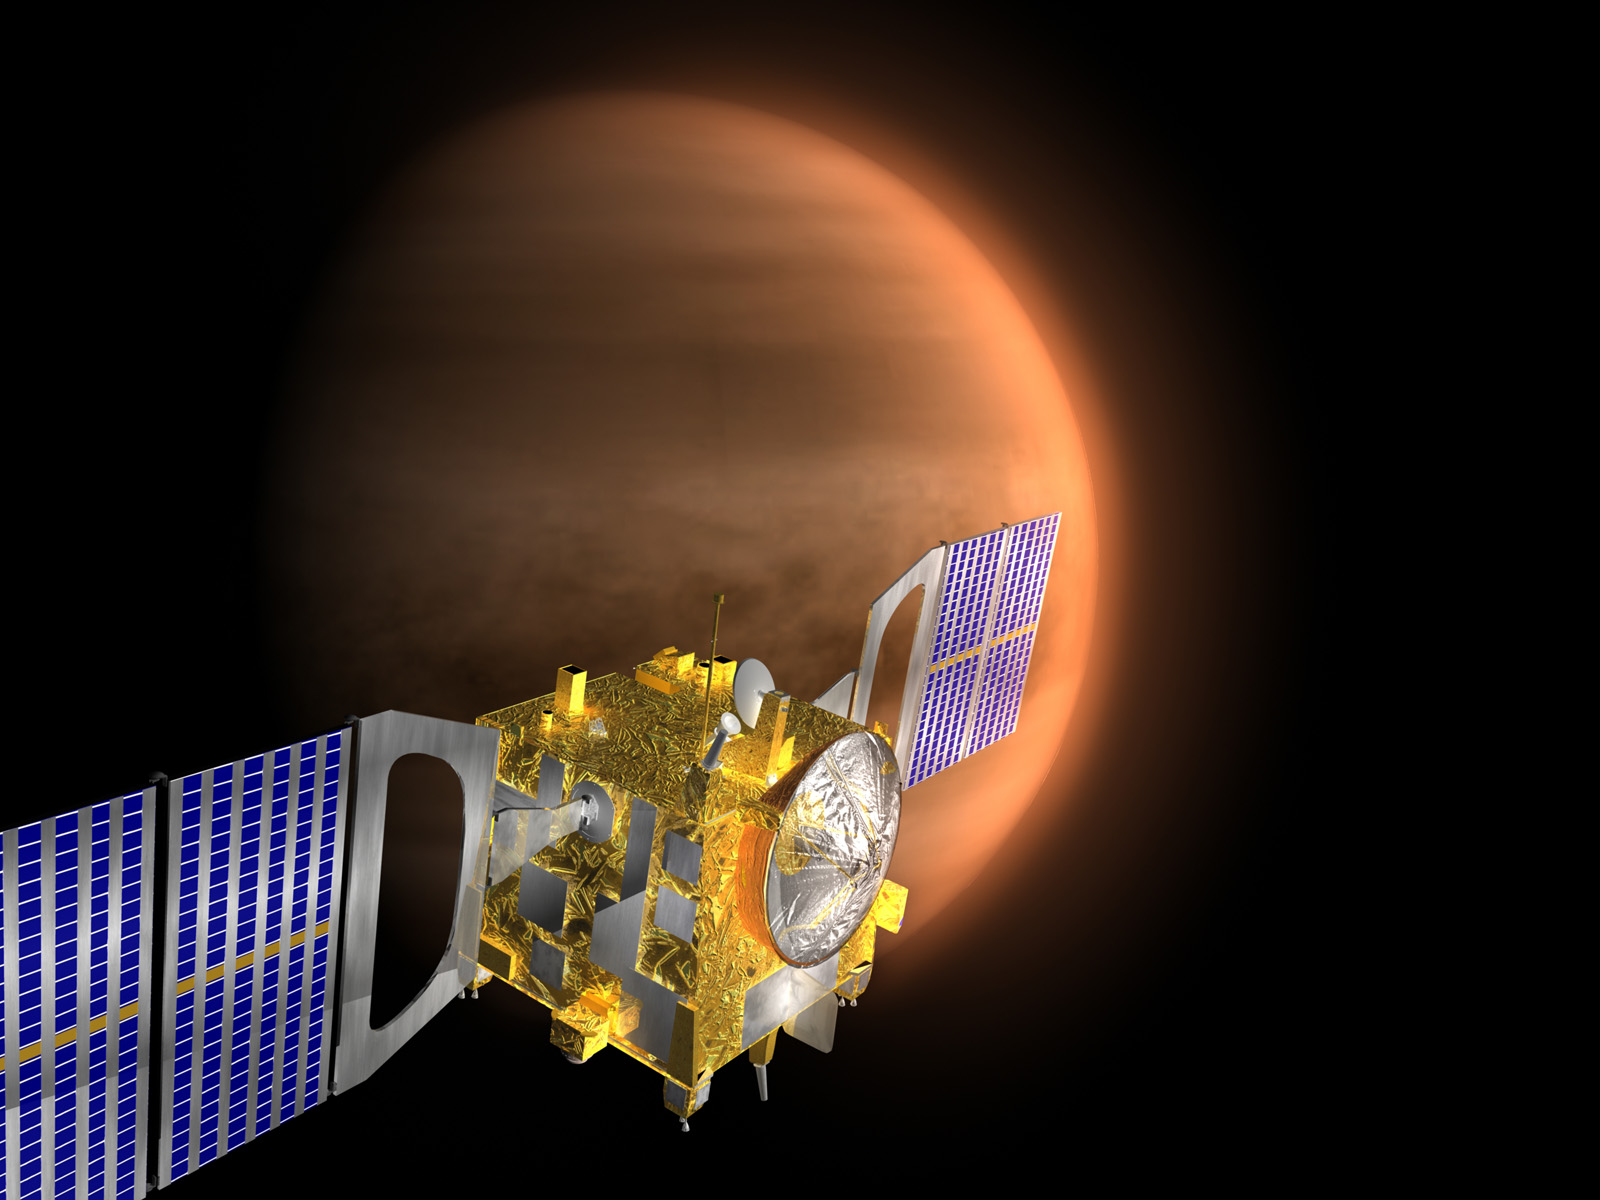 Nasa nssdca spacecraft pdmp details image of the venus express spacecraft sciox Image collections